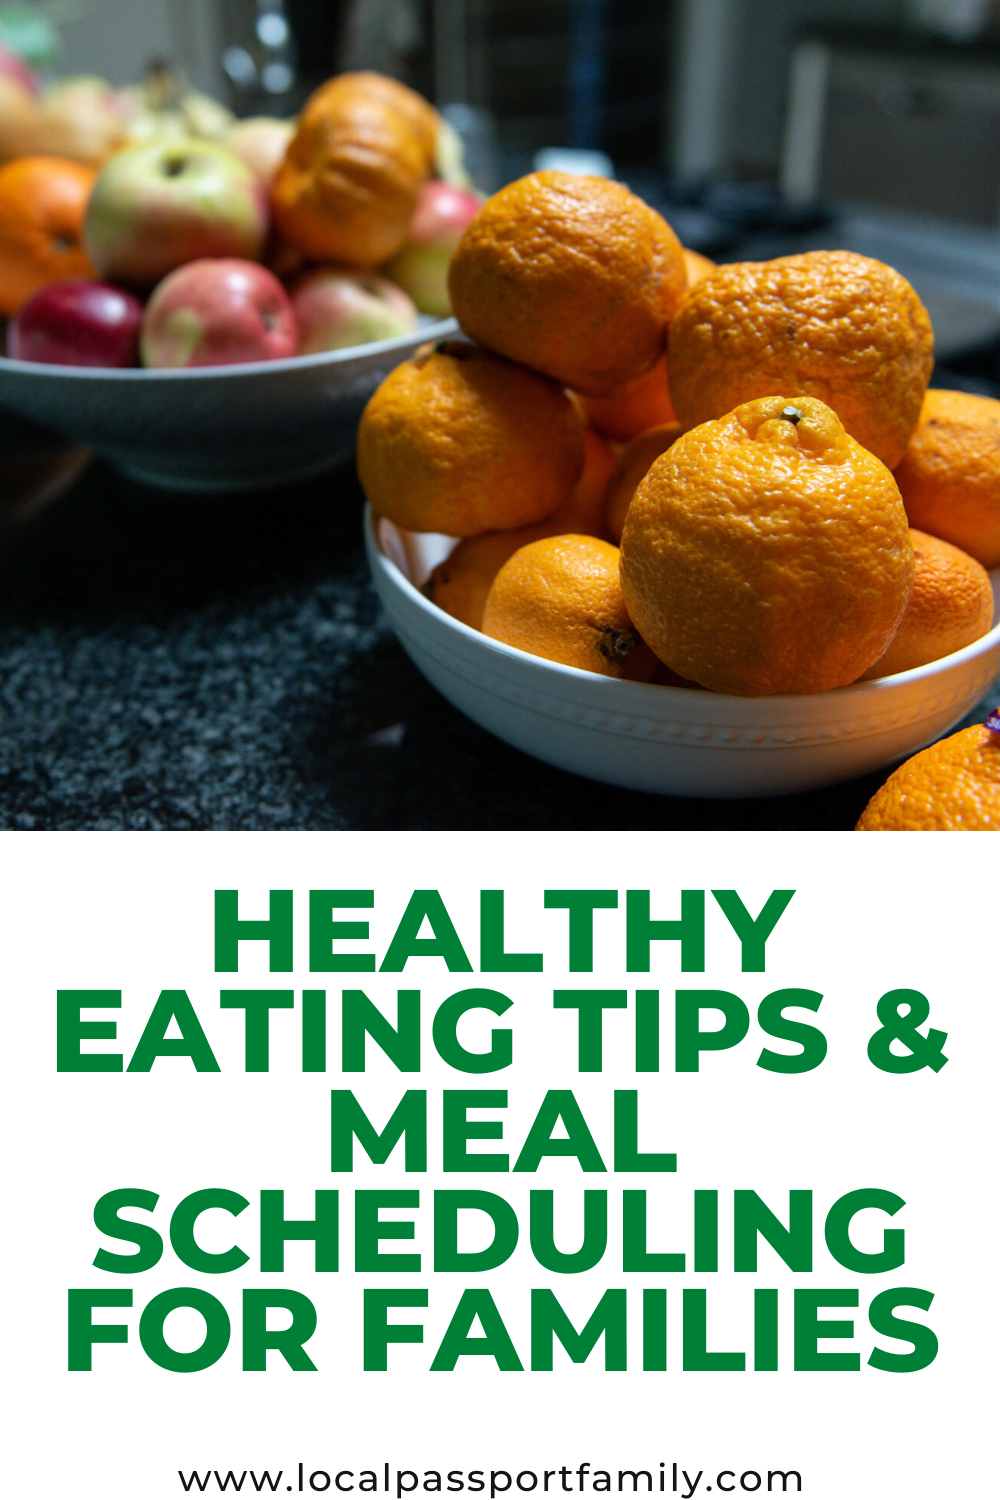 healthy eating tips for kids and meal schedule for families